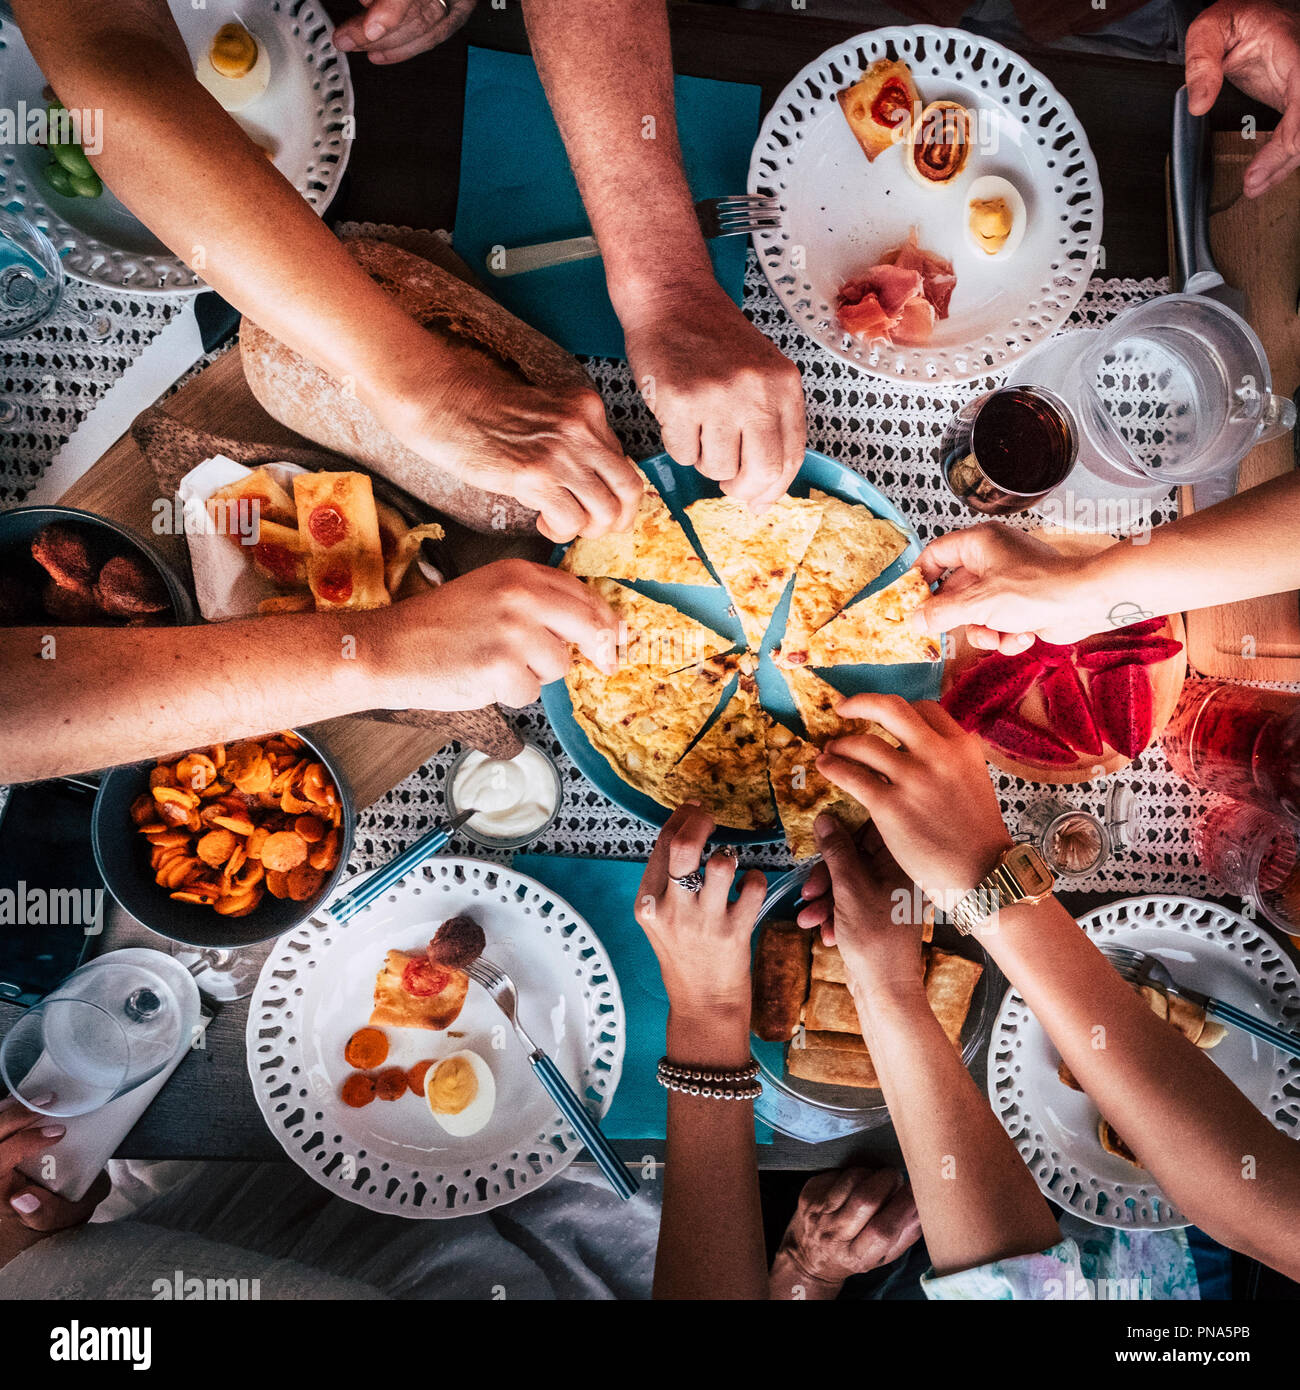 Aerial view from above for table and hands and a lot of food and drinks. celebration and party event concept image. all hands taking from the same pla Stock Photo